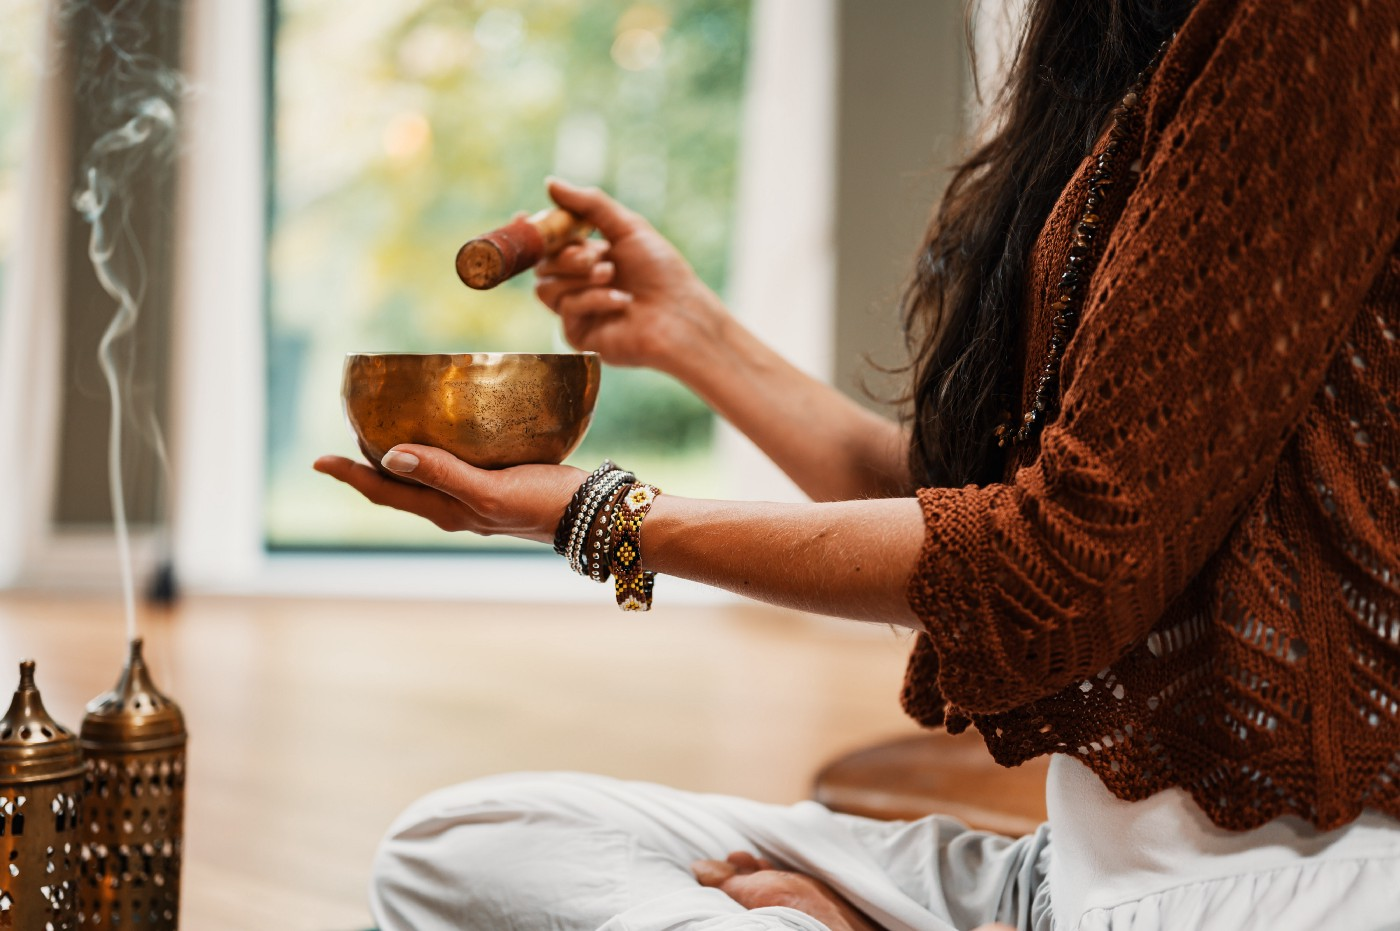 A person meditating with incense.